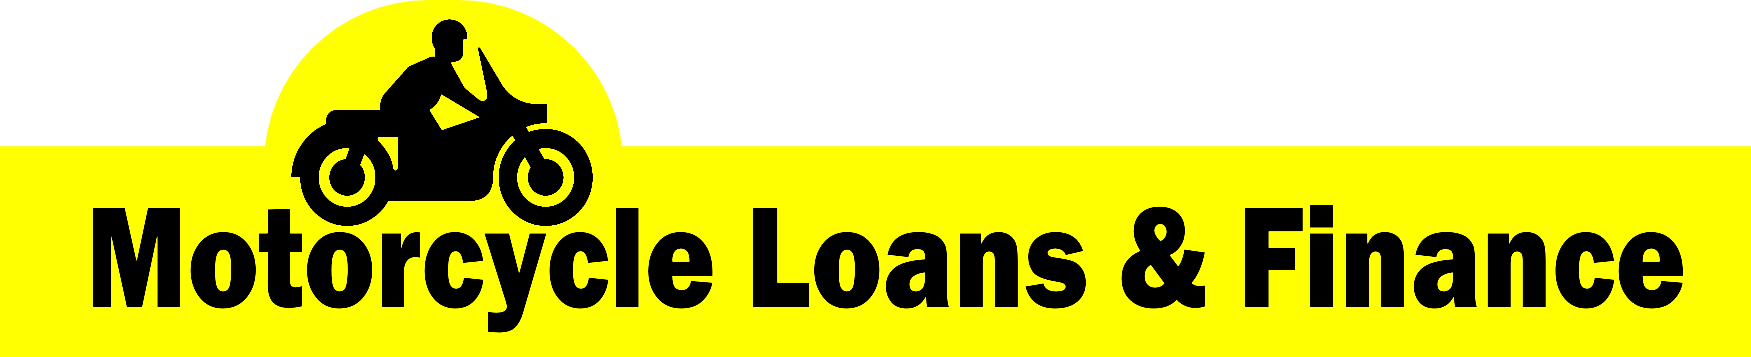 Bike Loans Motorcycle Loans Finance